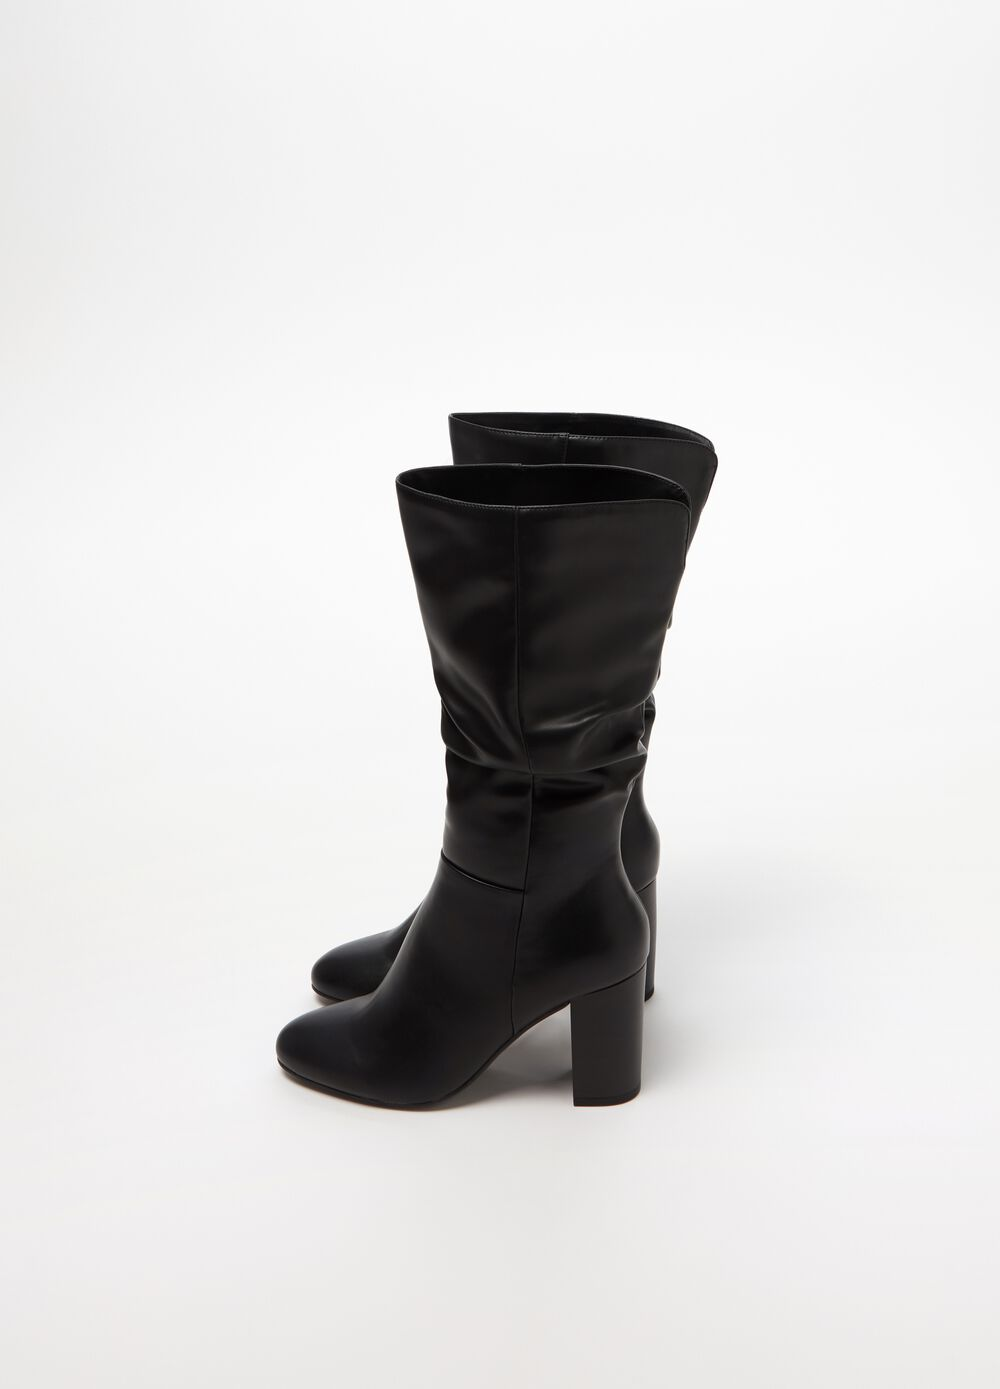 Solid colour boots with high heel